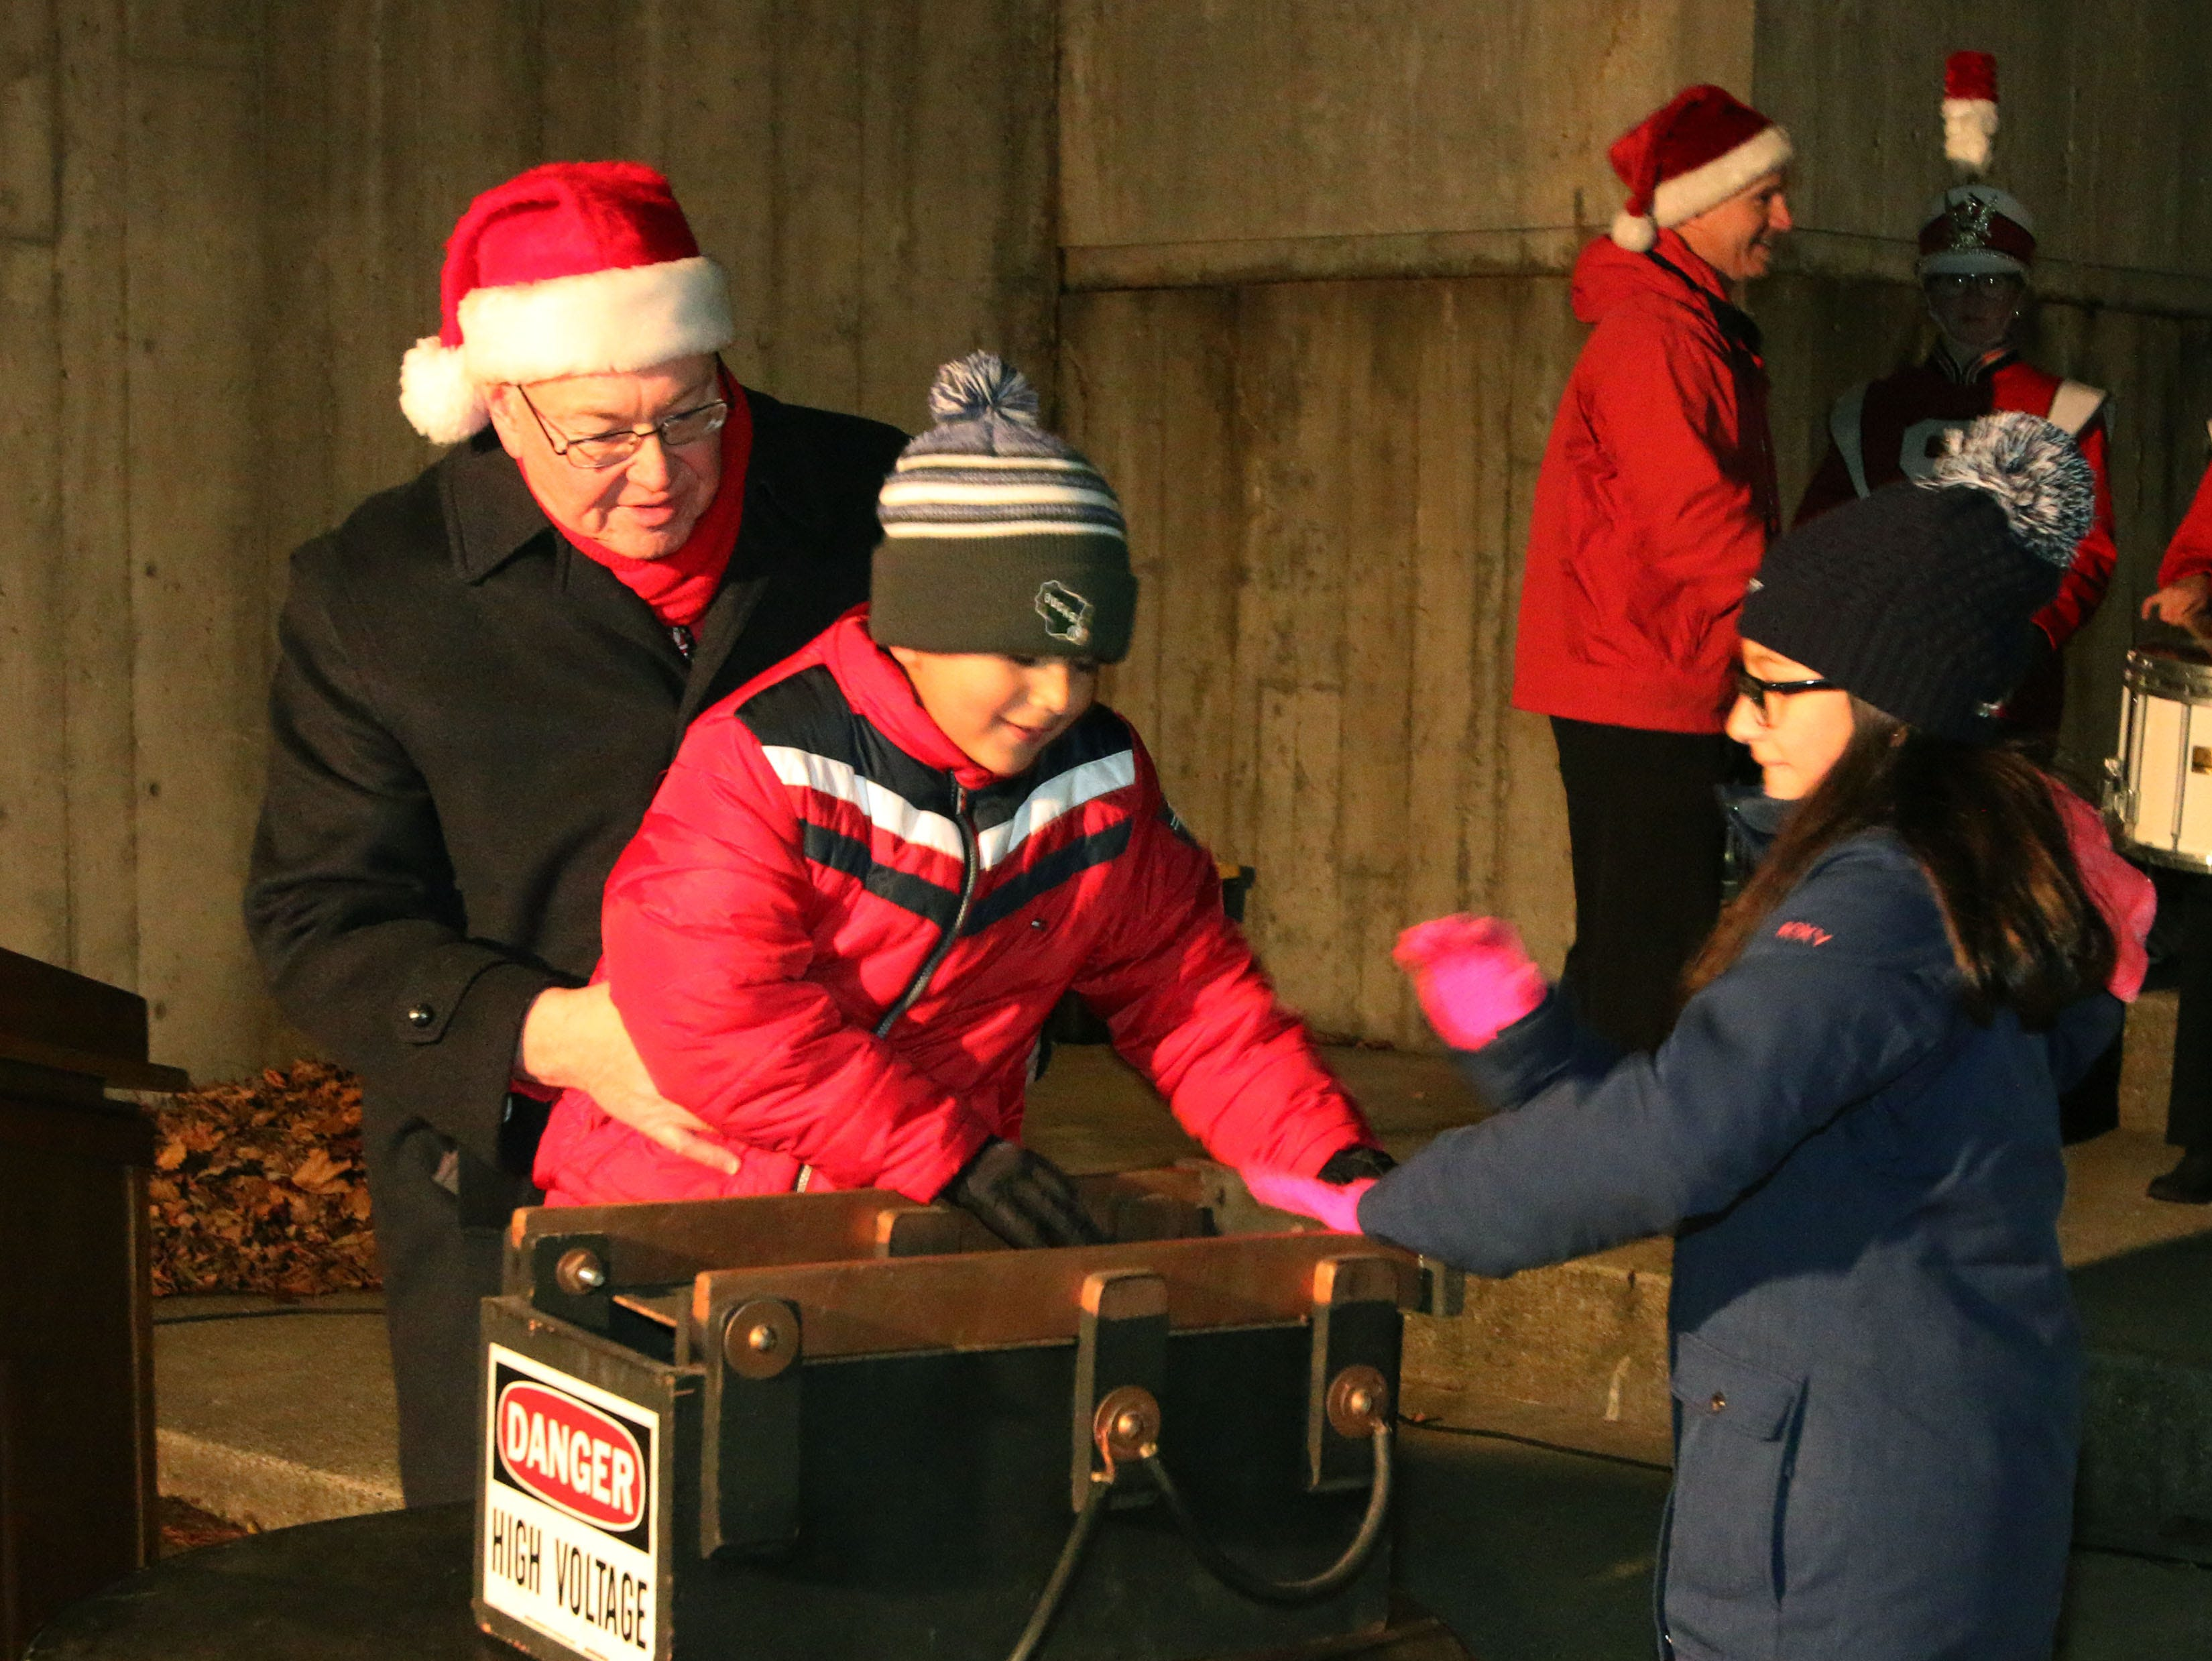 Eli Zamora, 7, center, helps Mayor Michael Vandersteen, left, and Payton Salazar, 11, right, turn on the holiday light display at Mead Library following the 26th Annual Jaycees Holiday Parade, Sunday, November 25, 2018 in Sheboygan, Wis.